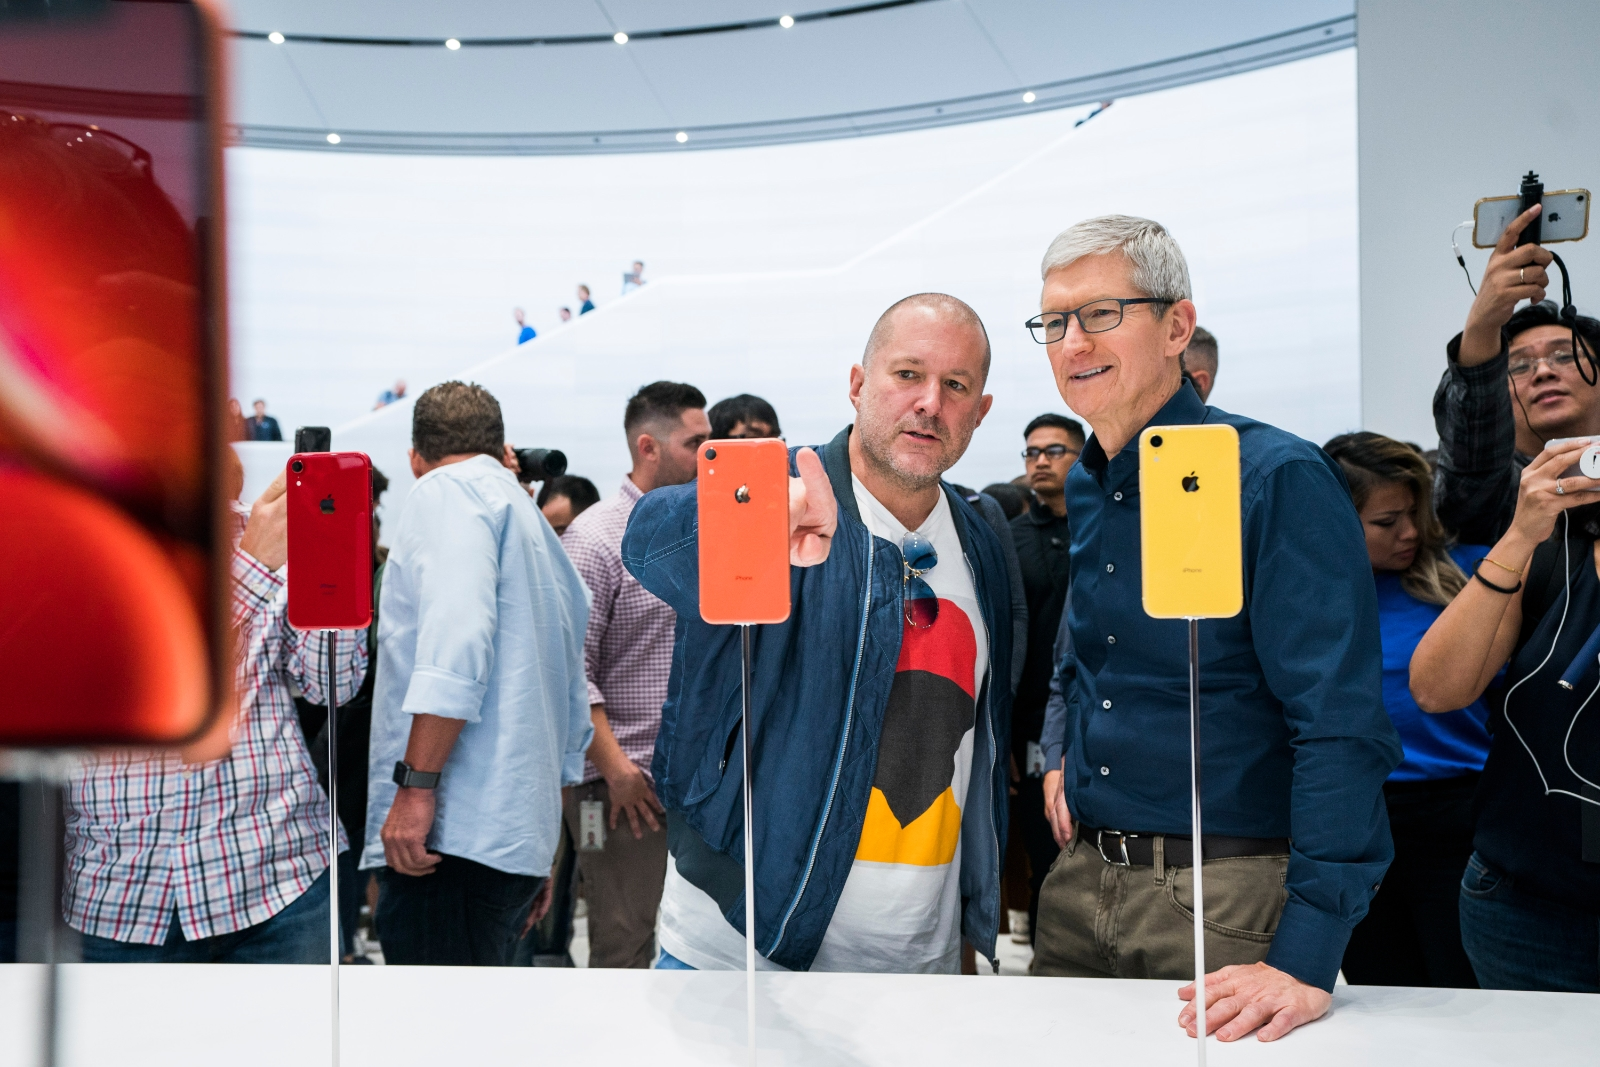 Famed Apple Designer Jony Ive Leaves Company After Nearly 30 Years